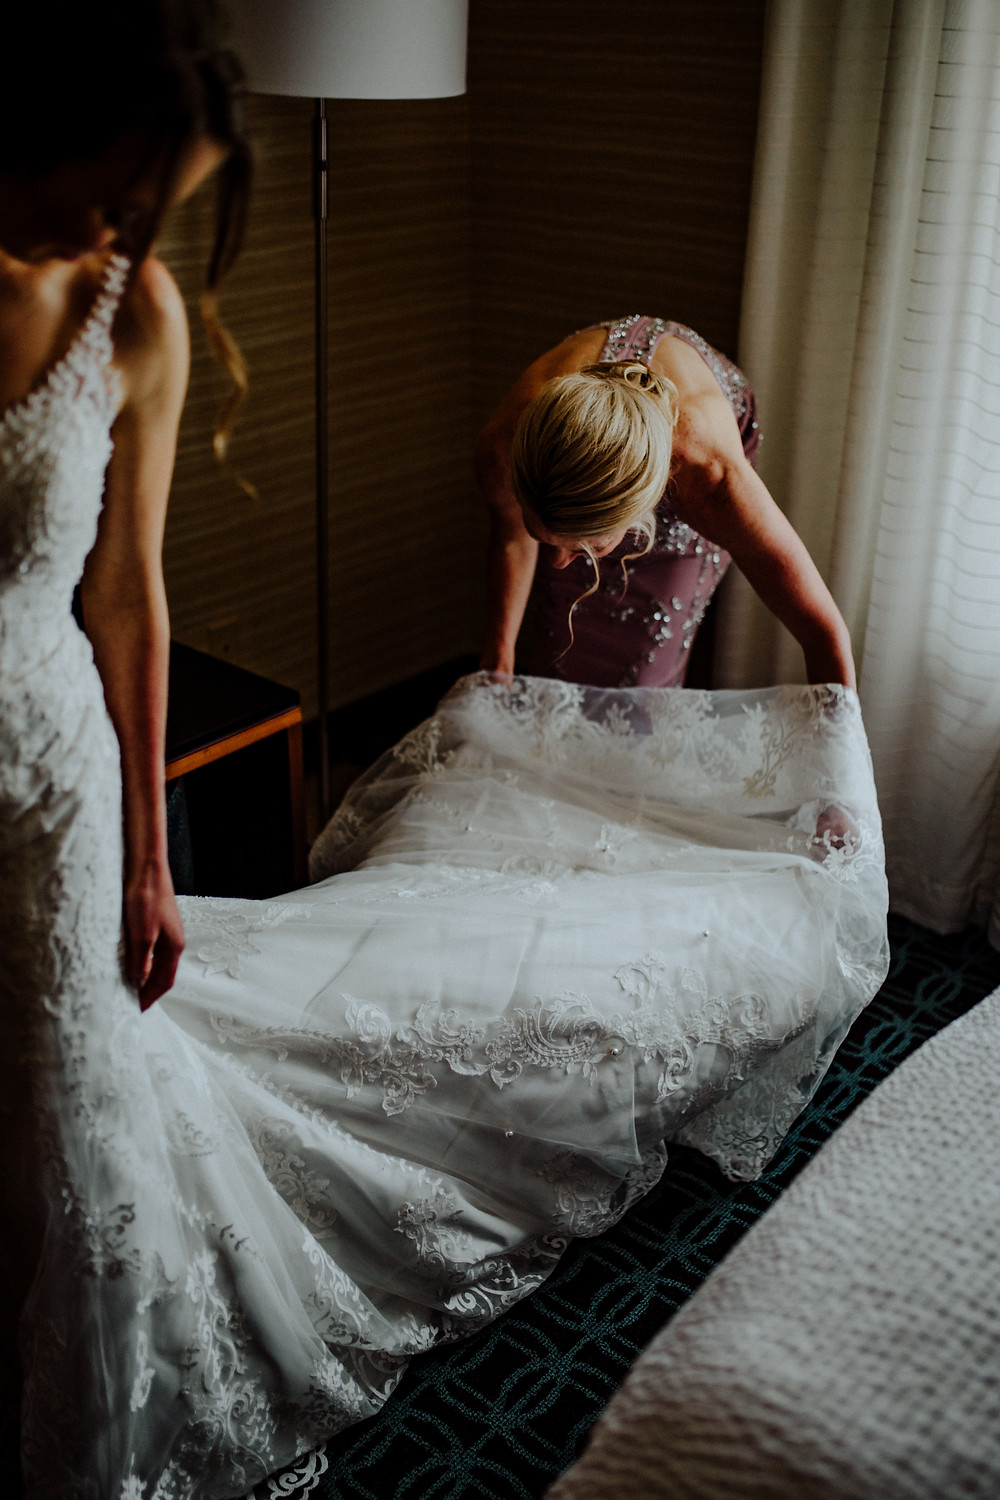 wedding photo by little blue bird photography in frankenmuth, michigan